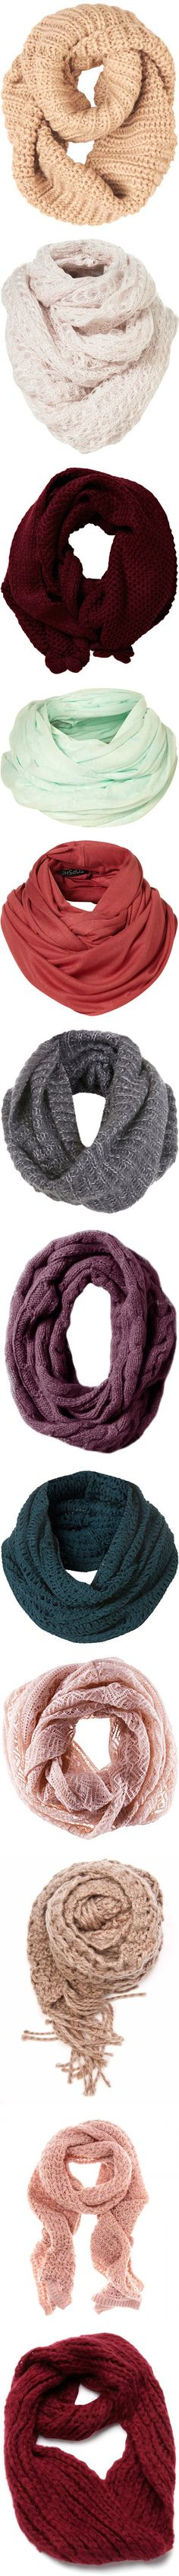 Scarves are a way of expressing yourself without going too crazy.  Plus who doesn't need an infinity scarf?!